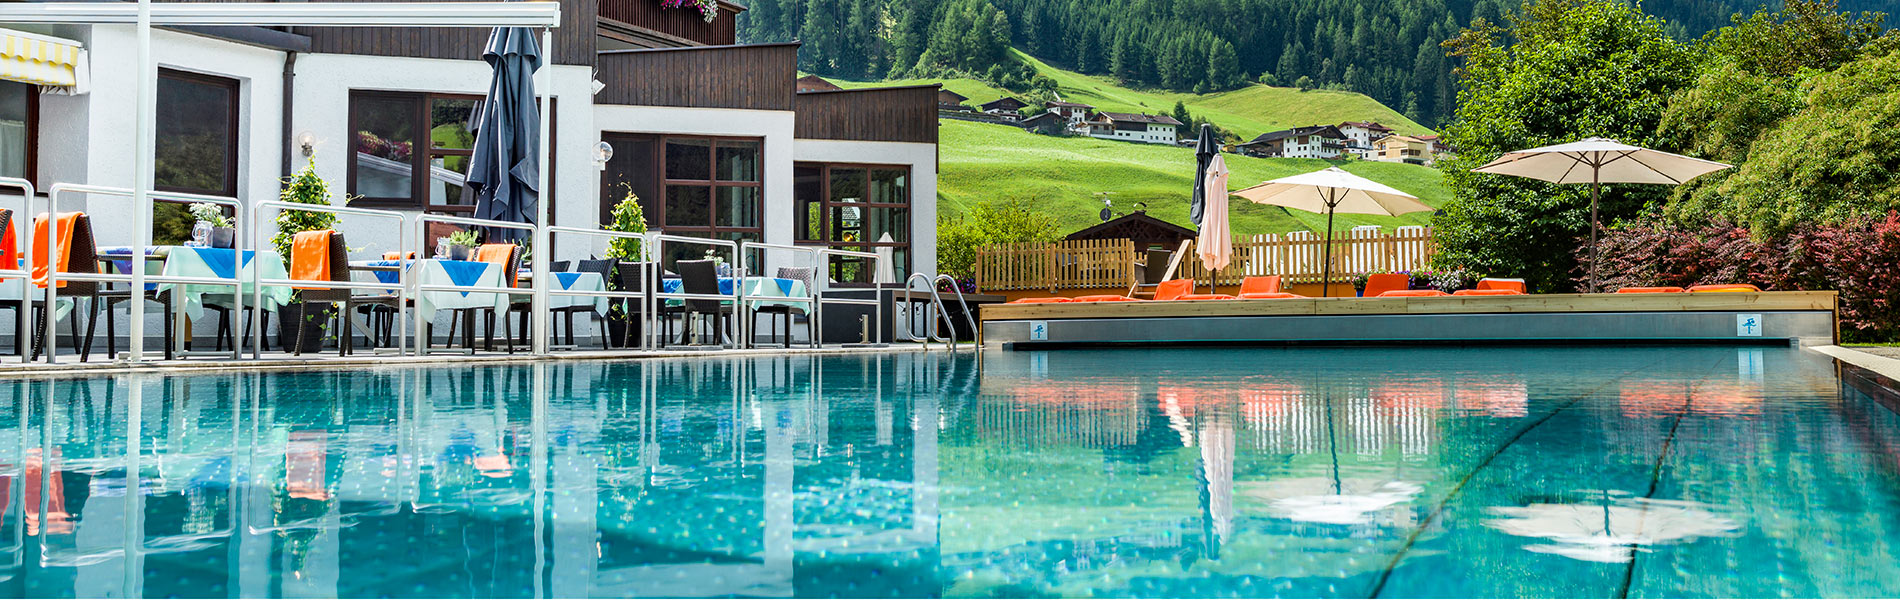 Hotel Happy Stubai Neustift Tirol Austria Pool